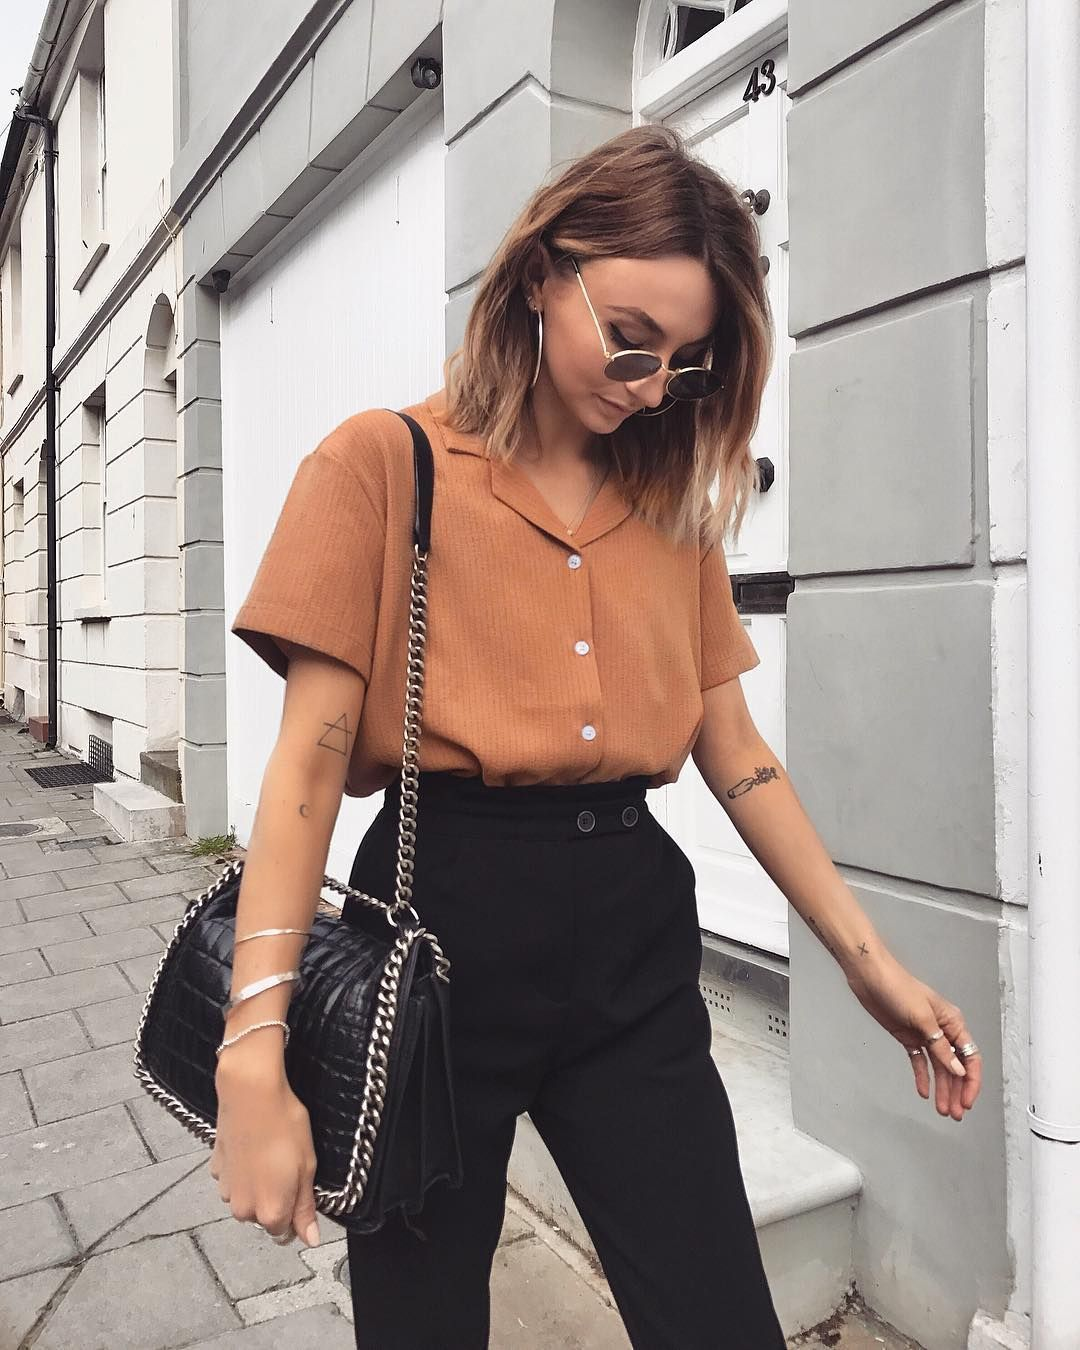 Photo of 22 cute summer outfit ideas you should try right away  – o u t f i t s